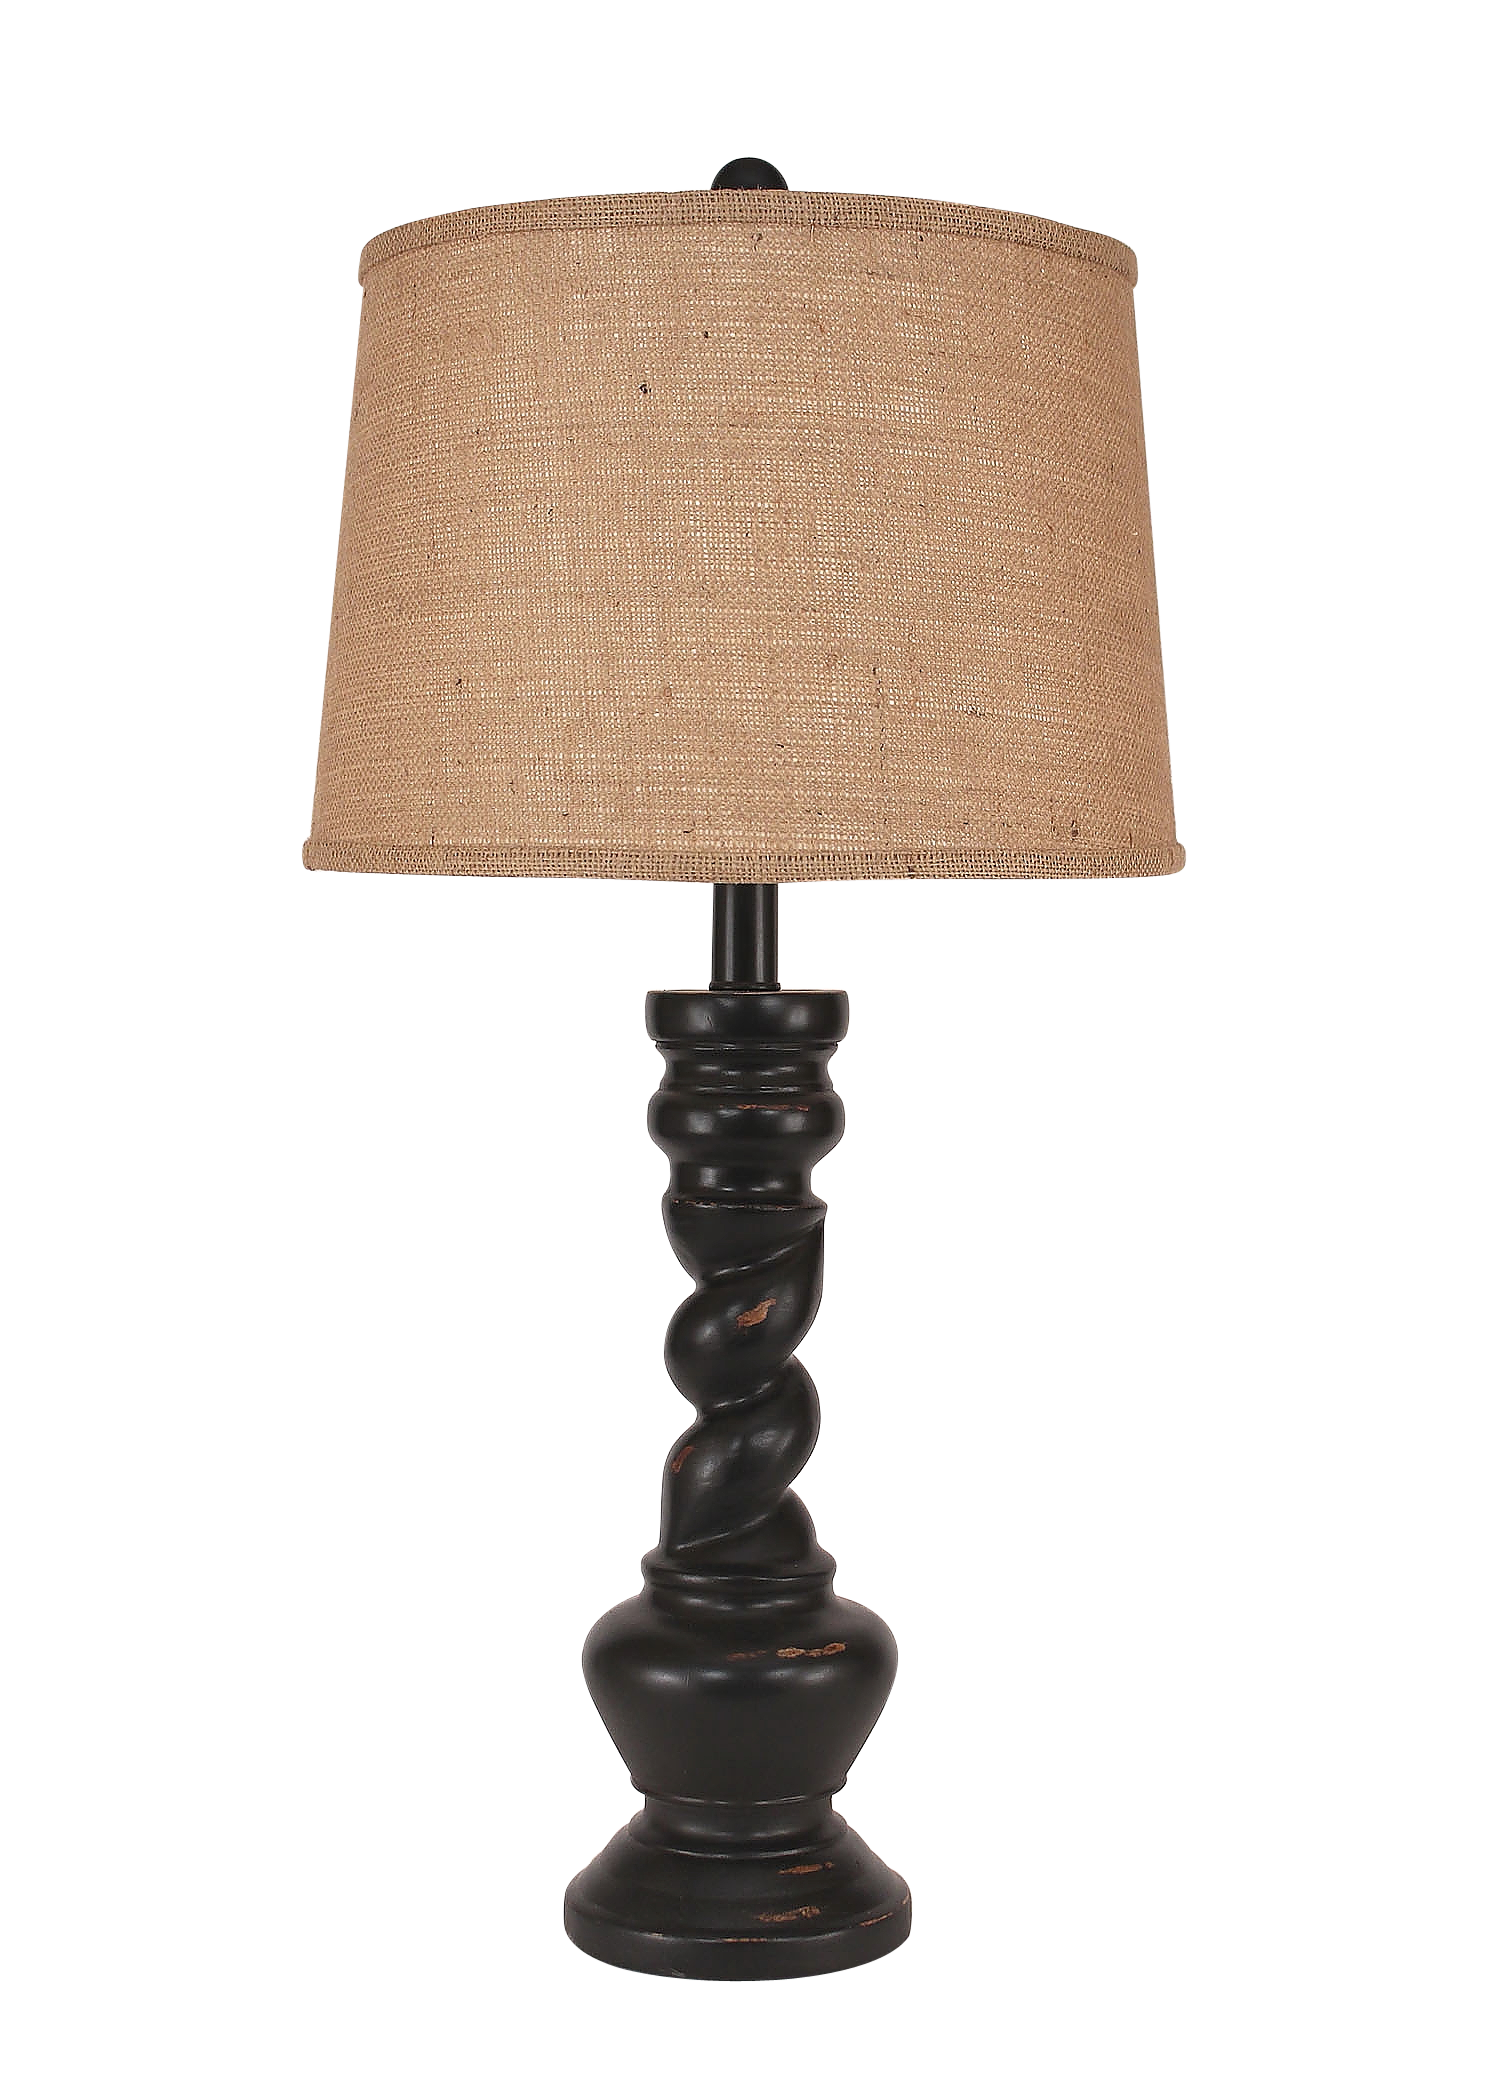 Distressed Black Country Twist Table Lamp - Coast Lamp Shop